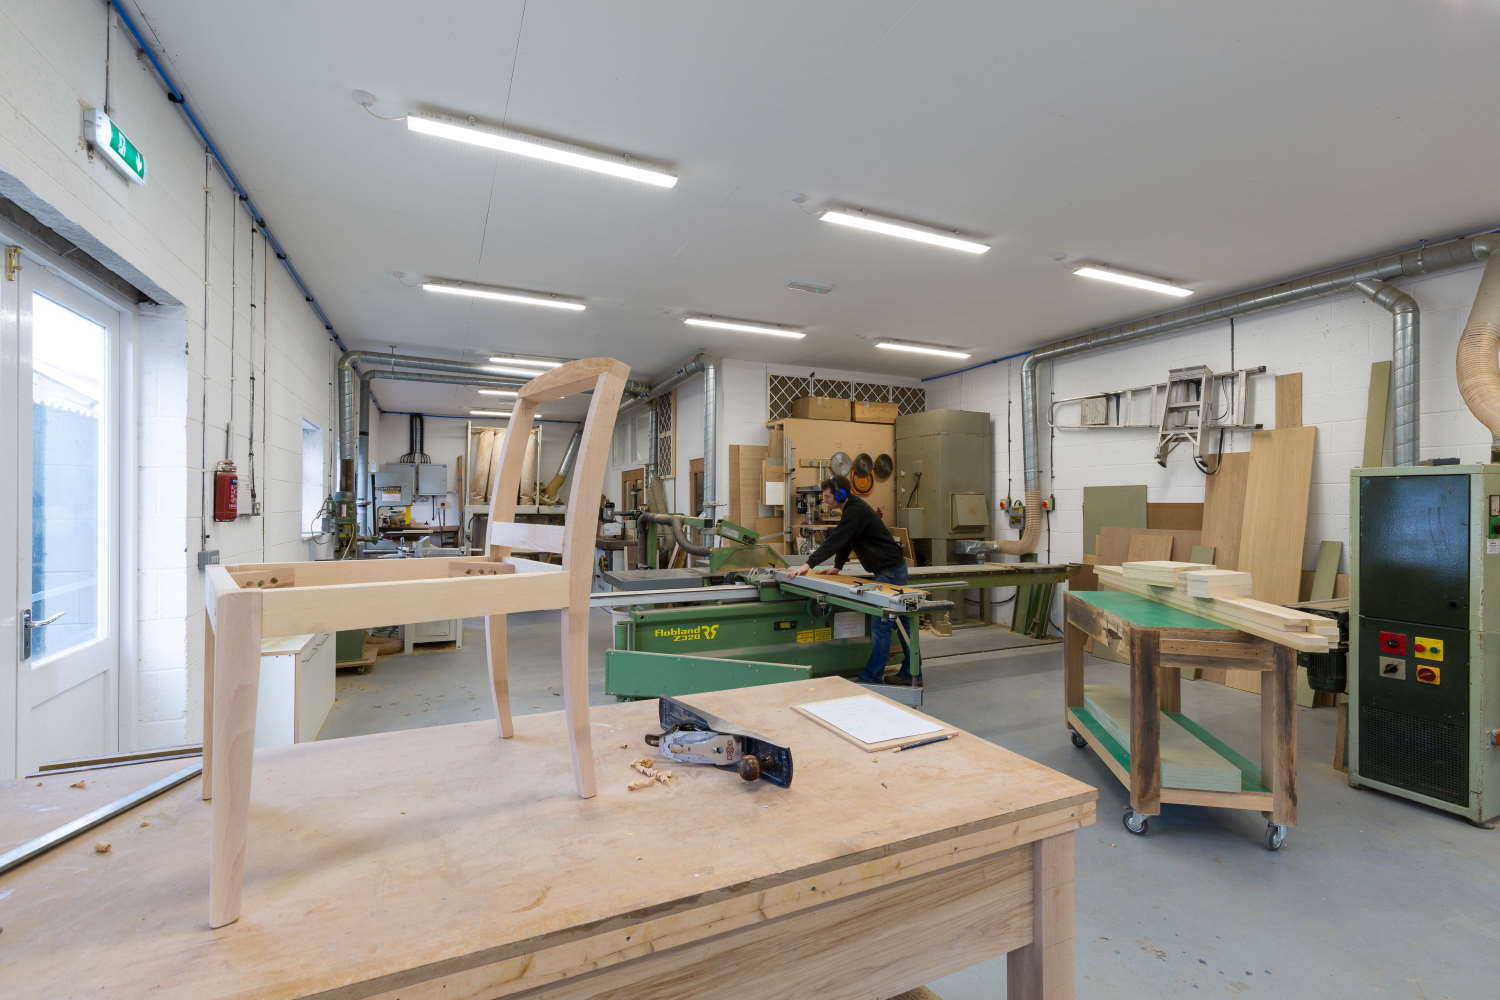 Rinaldi - Lincolnshire Bespoke Furniture Workshop